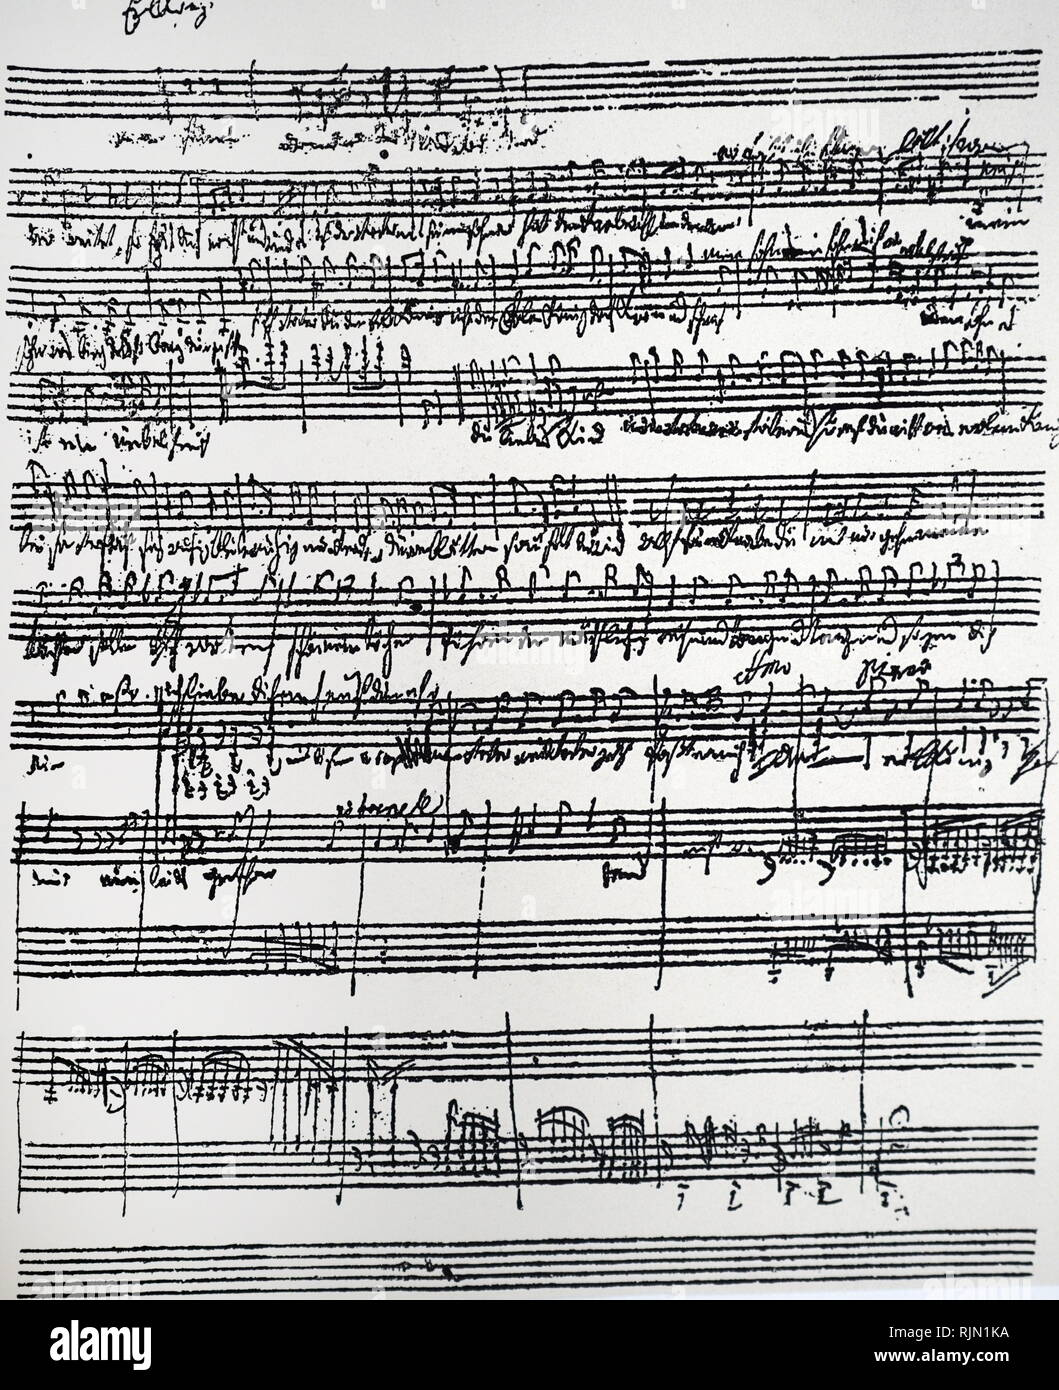 Schubert's autograph of a simplified accompaniment to his Erlkonig, one of several revisions, Franz Schubert composed his Lied Erlkonig for solo voice and piano in 1815, setting text from Goethe's poem. Schubert revised the song three times before publishing his fourth version in 1821 as his Opus 1; - Stock Image